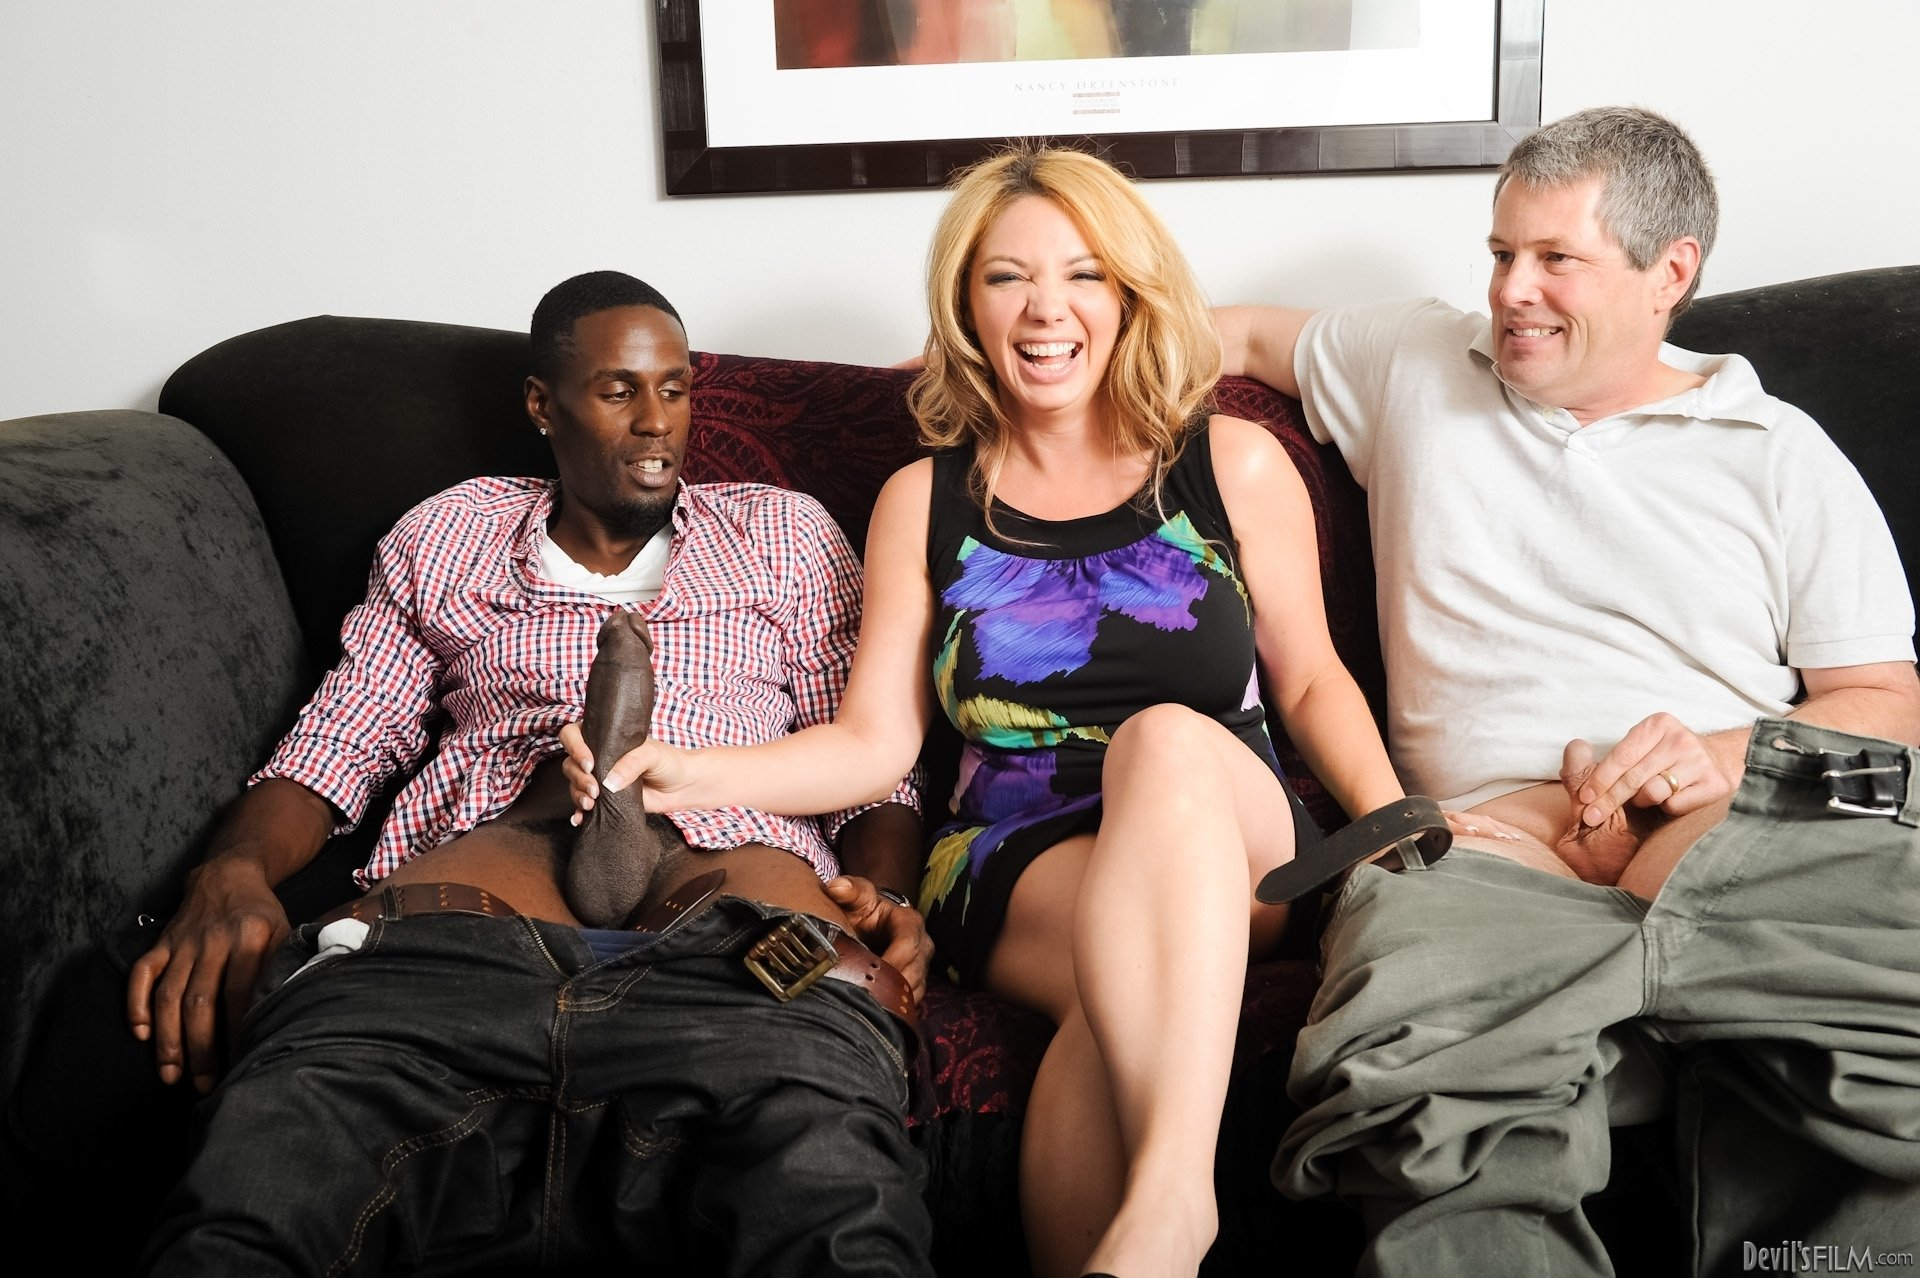 Cheating swedish wife dinner party porn